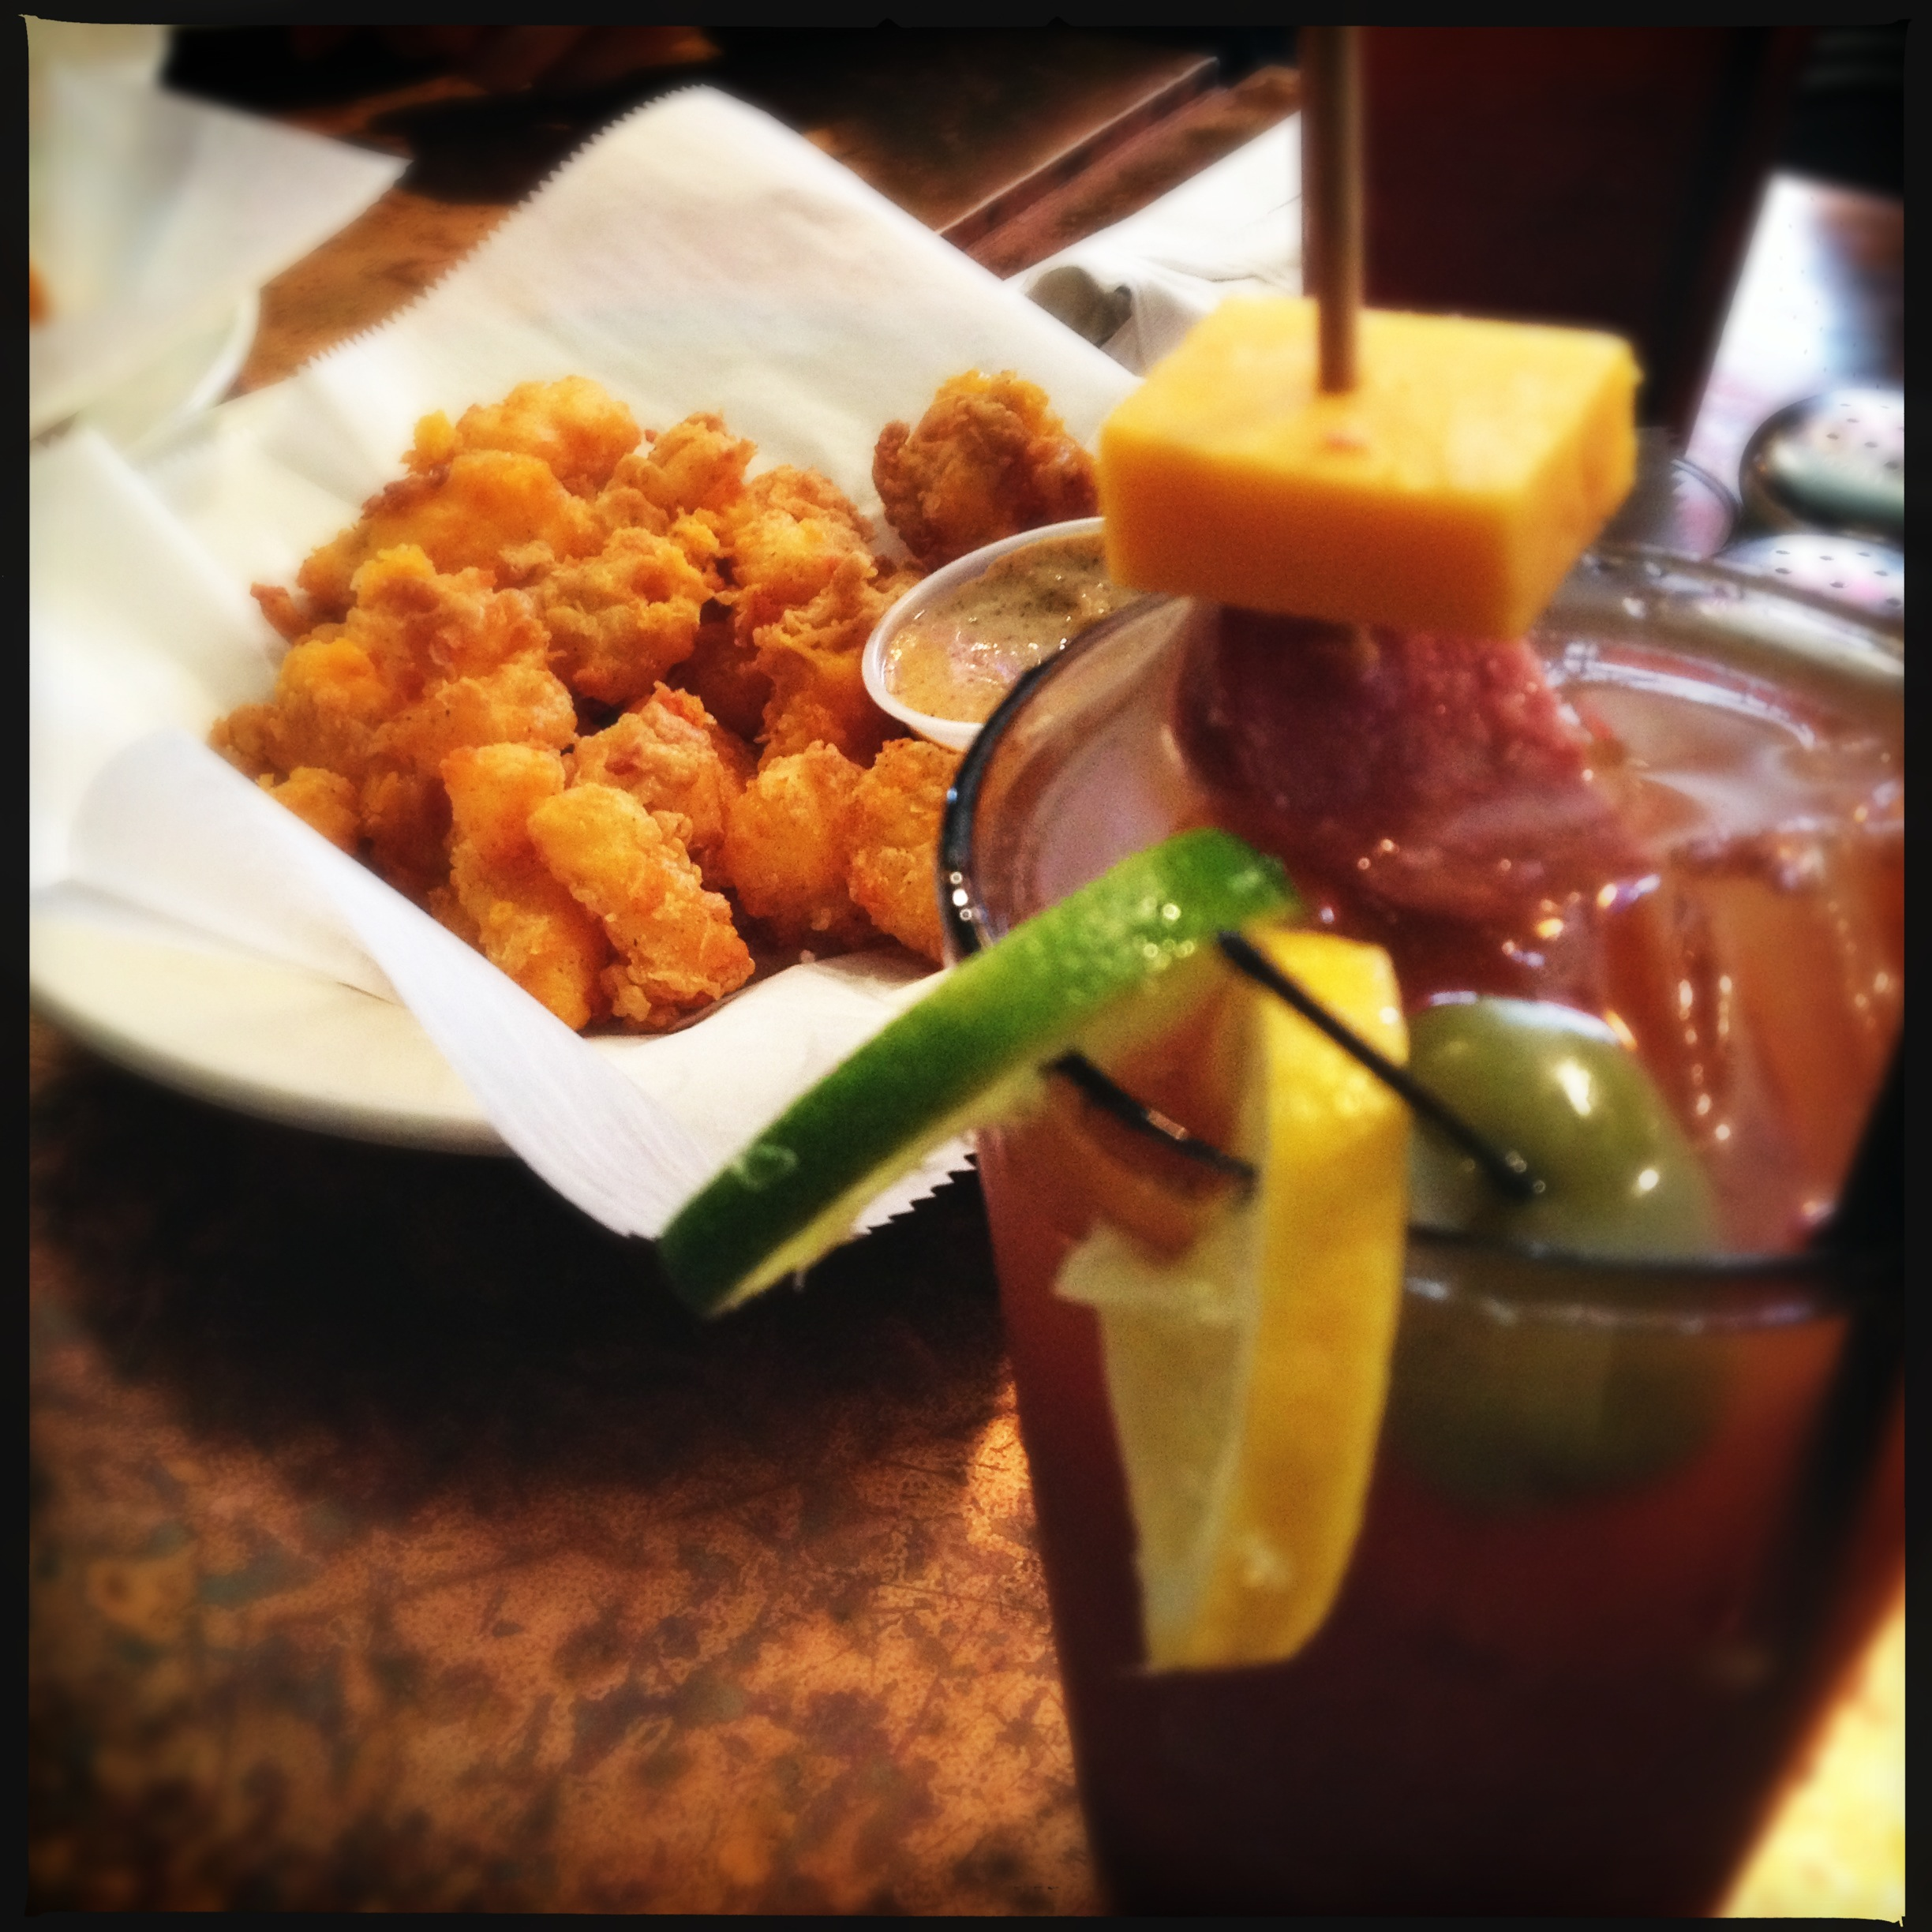 Fountain Bloody, and curds